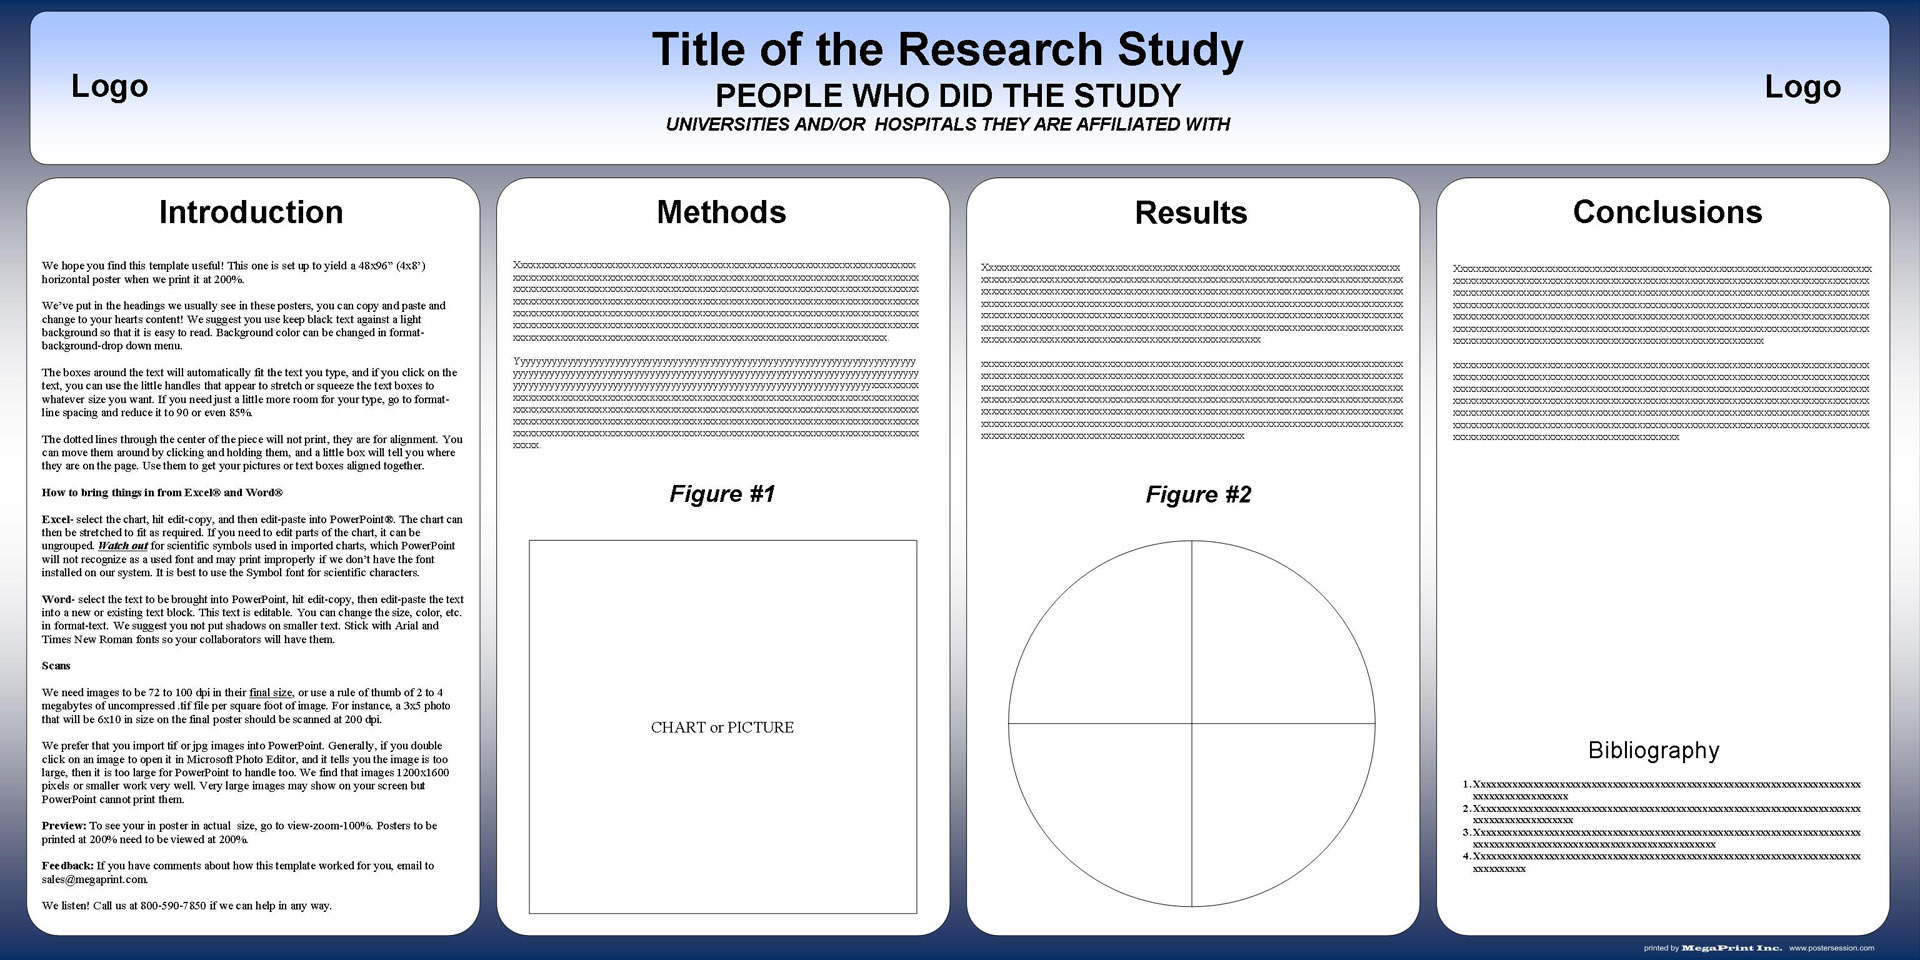 Free powerpoint scientific research poster templates for printing 48x96 academic poster template download toneelgroepblik Choice Image